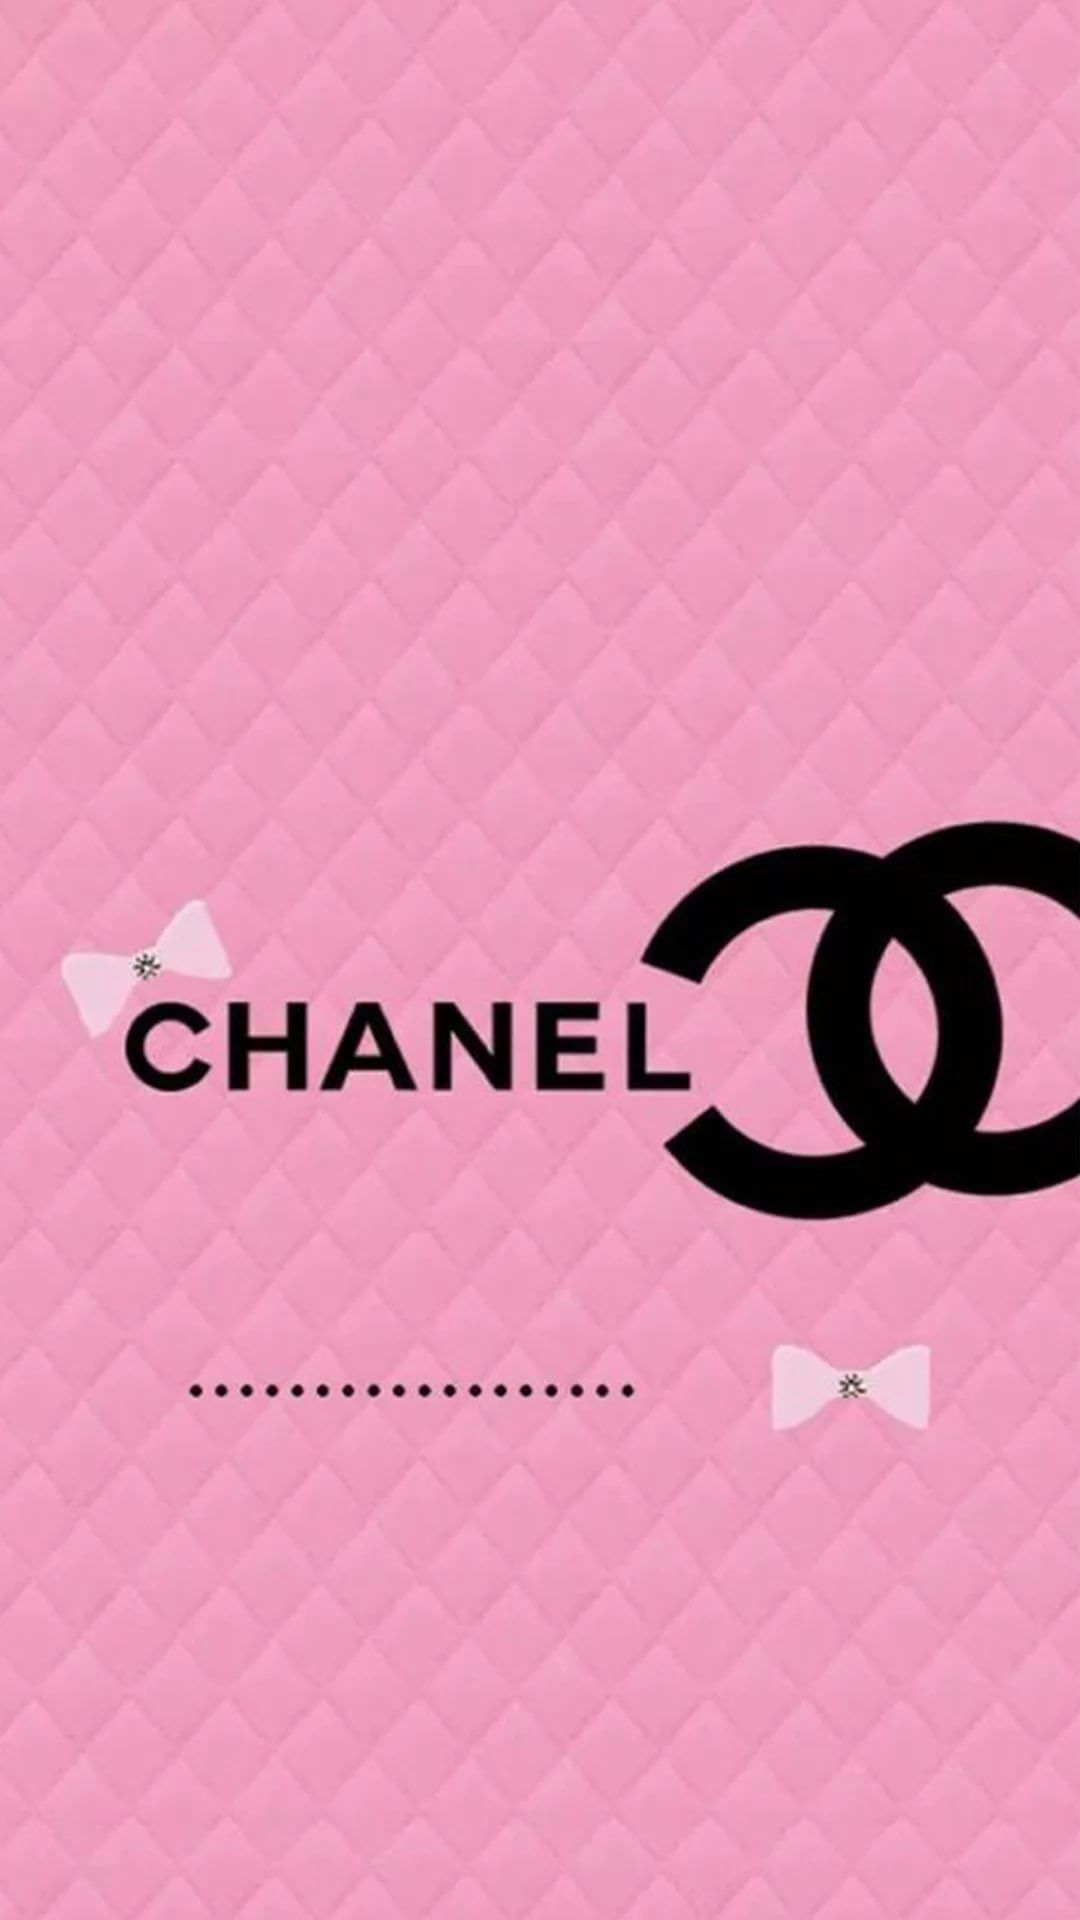 Chanel Background phone wallpaper